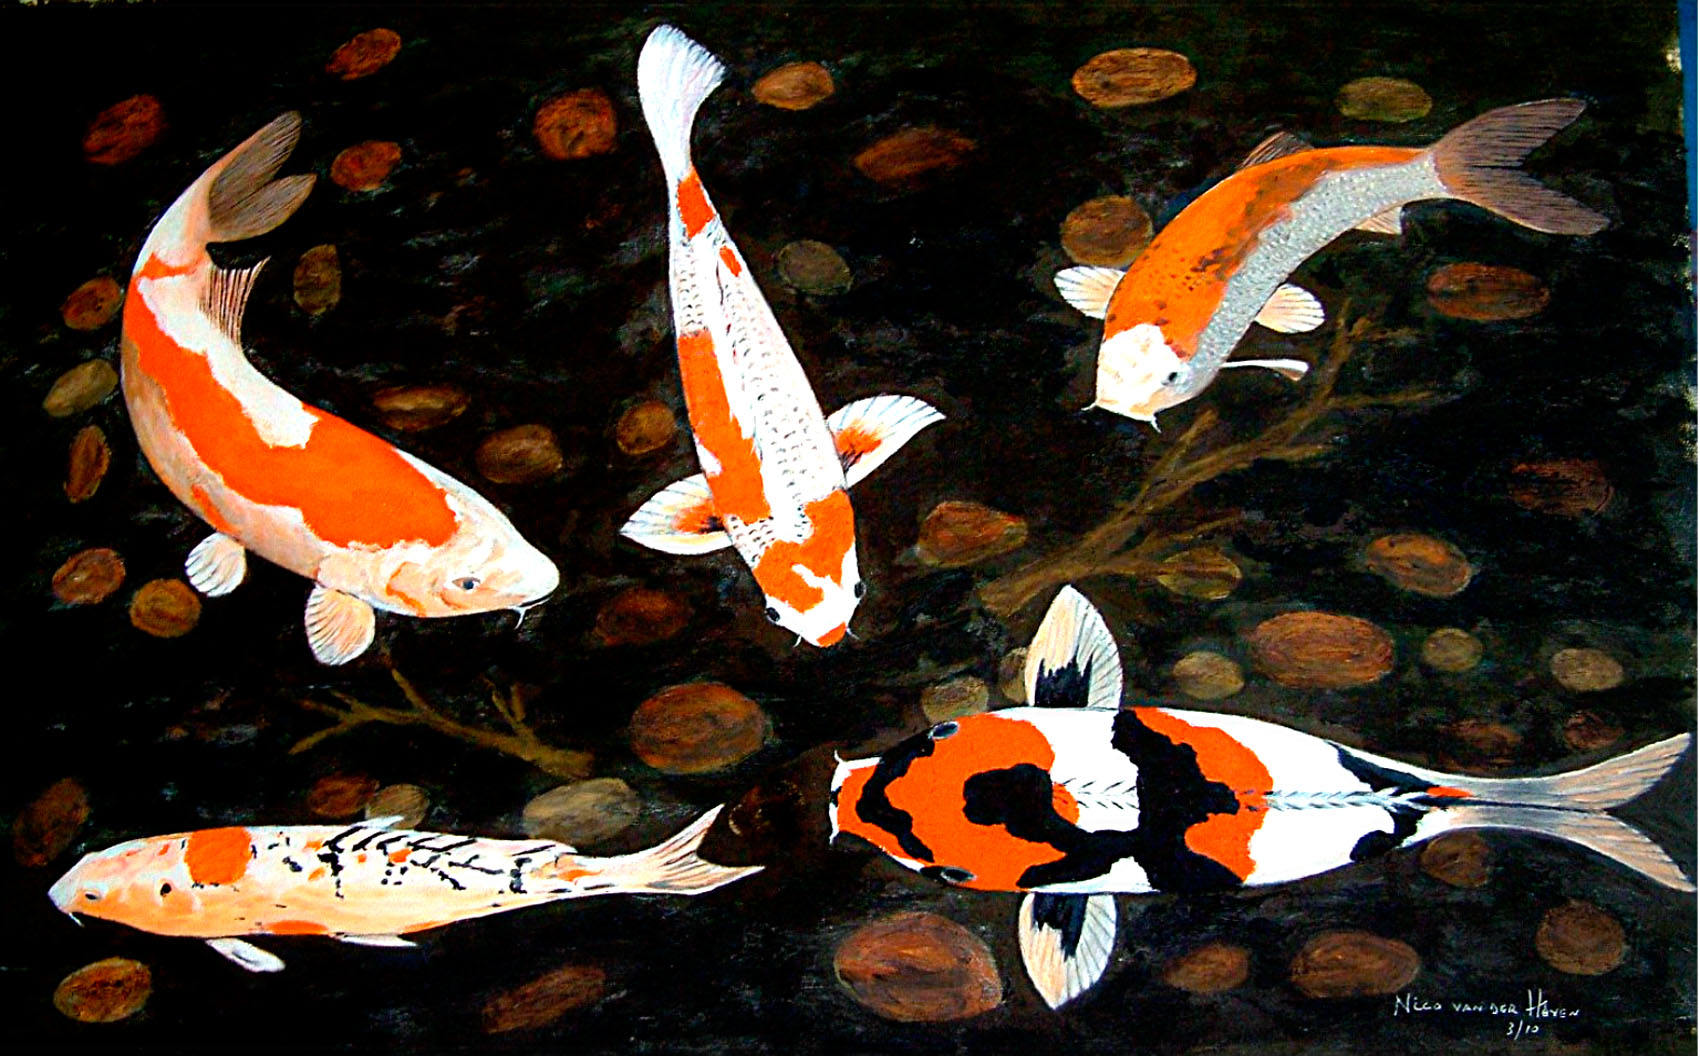 Koi fish nvdh foundmyself for Koi fish images